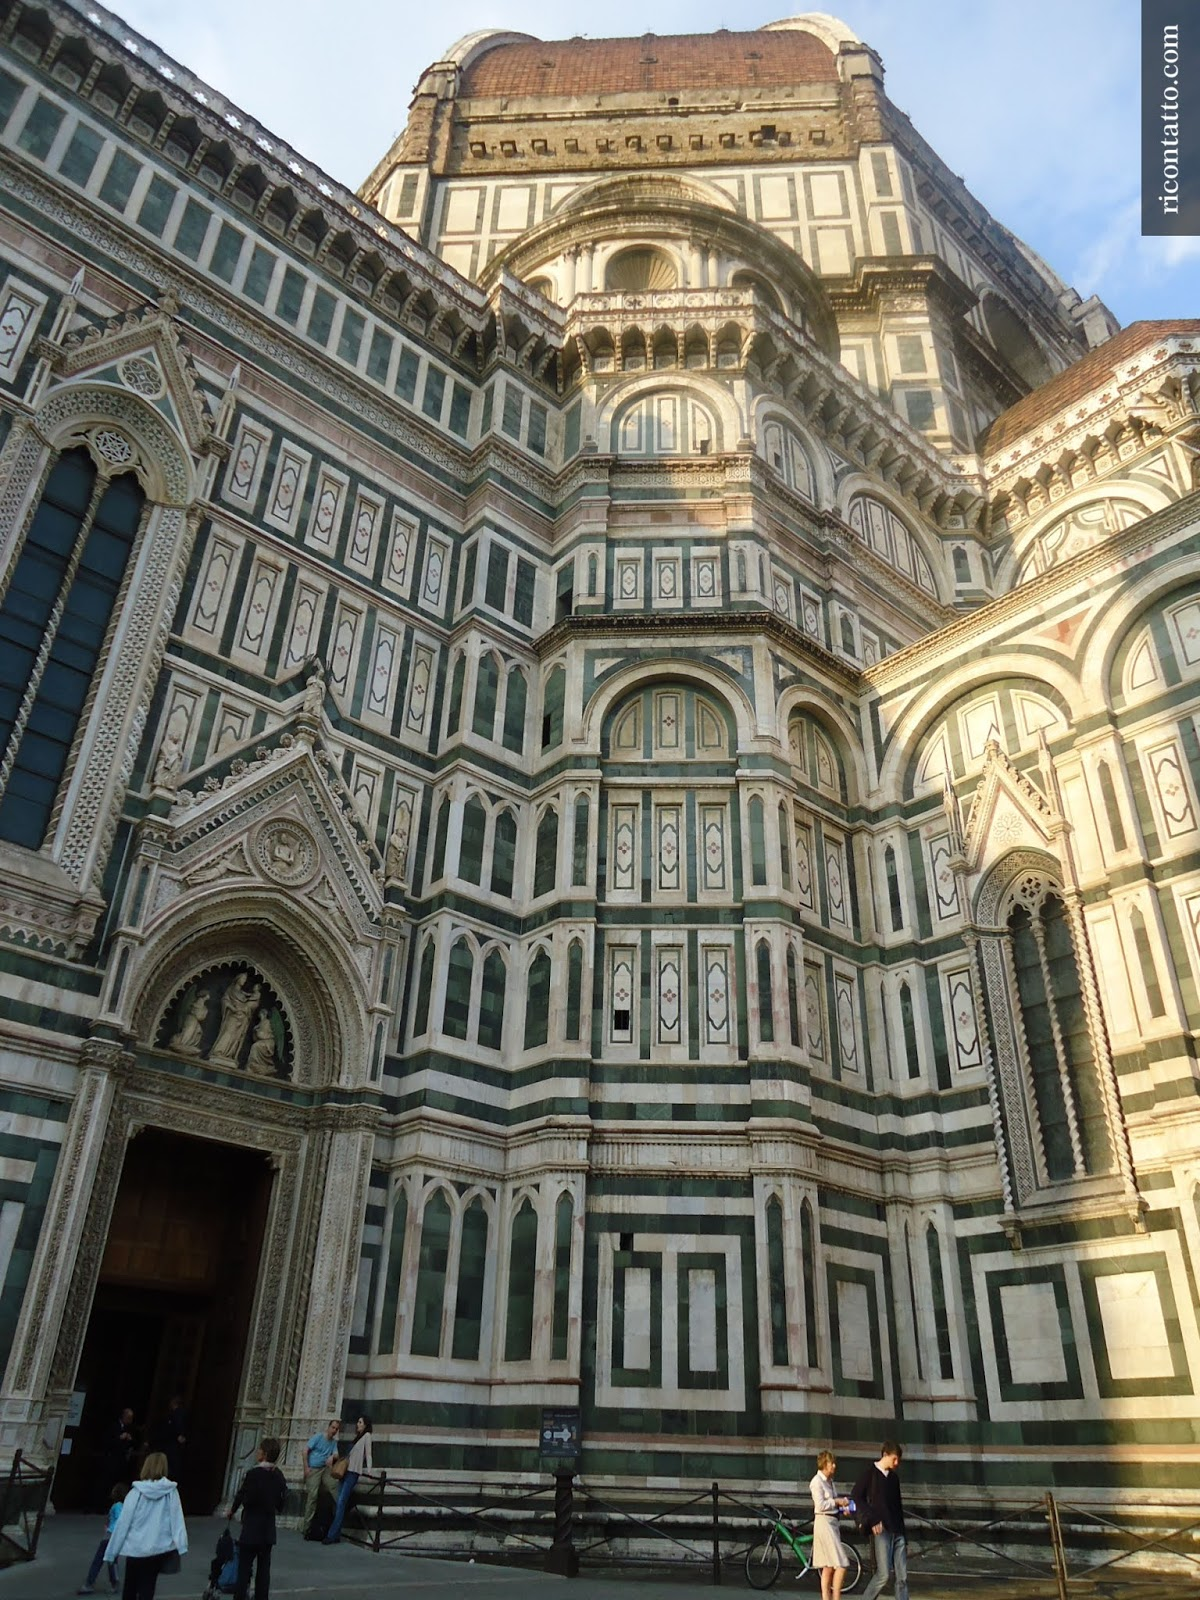 Firenze, Toscana, Italy - Photo #05 by Ricontatto.com